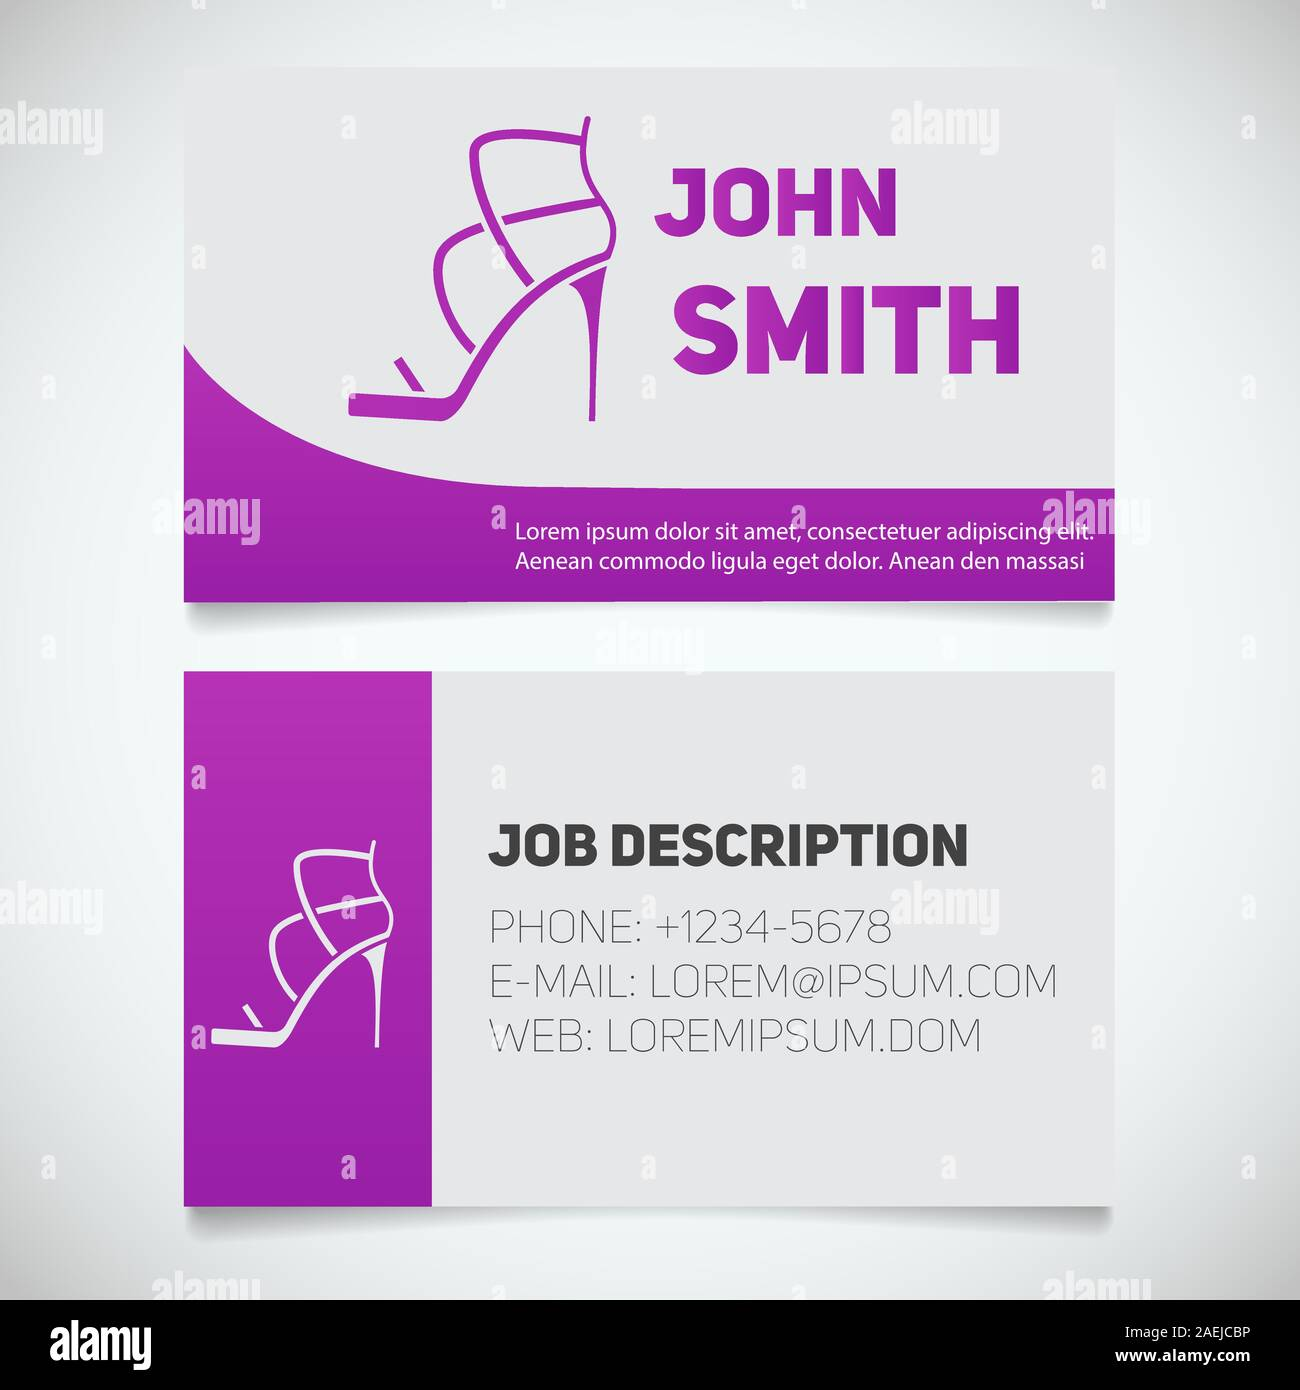 Business card print template with high heel shoe logo. Manager Intended For High Heel Template For Cards